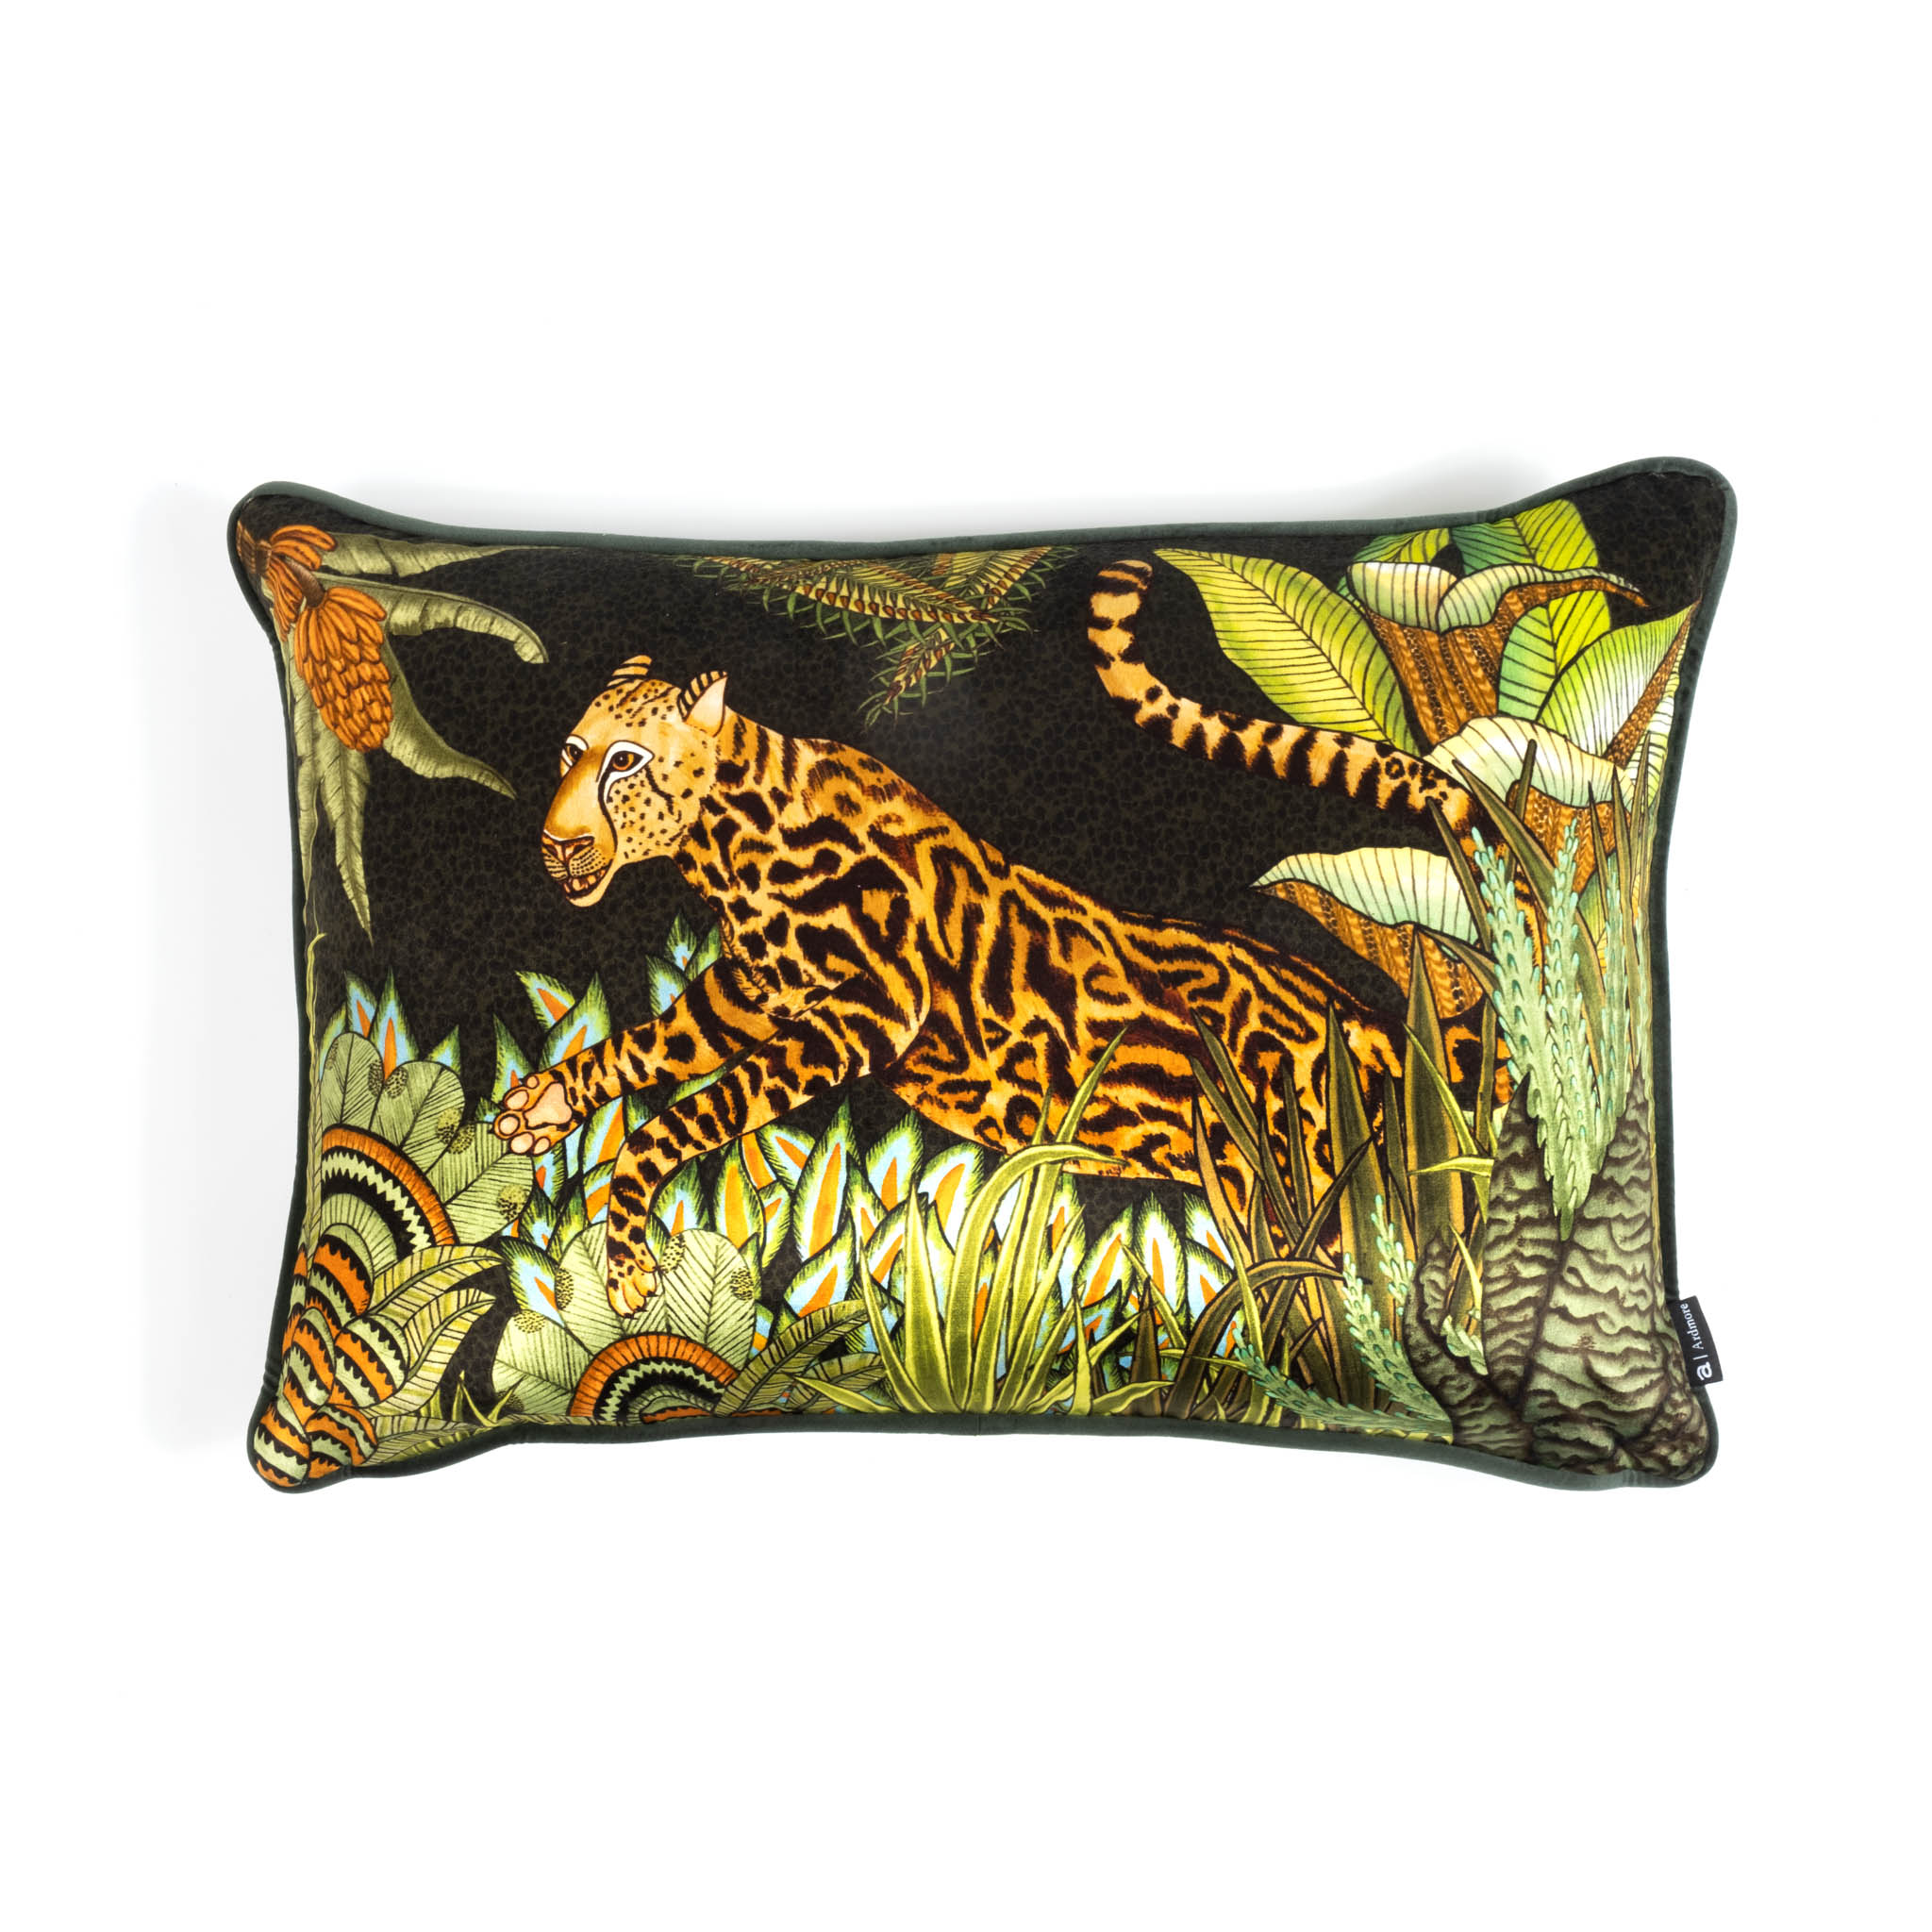 Cheetah Kings Forest Lumbar Pillow - Velvet - Delta